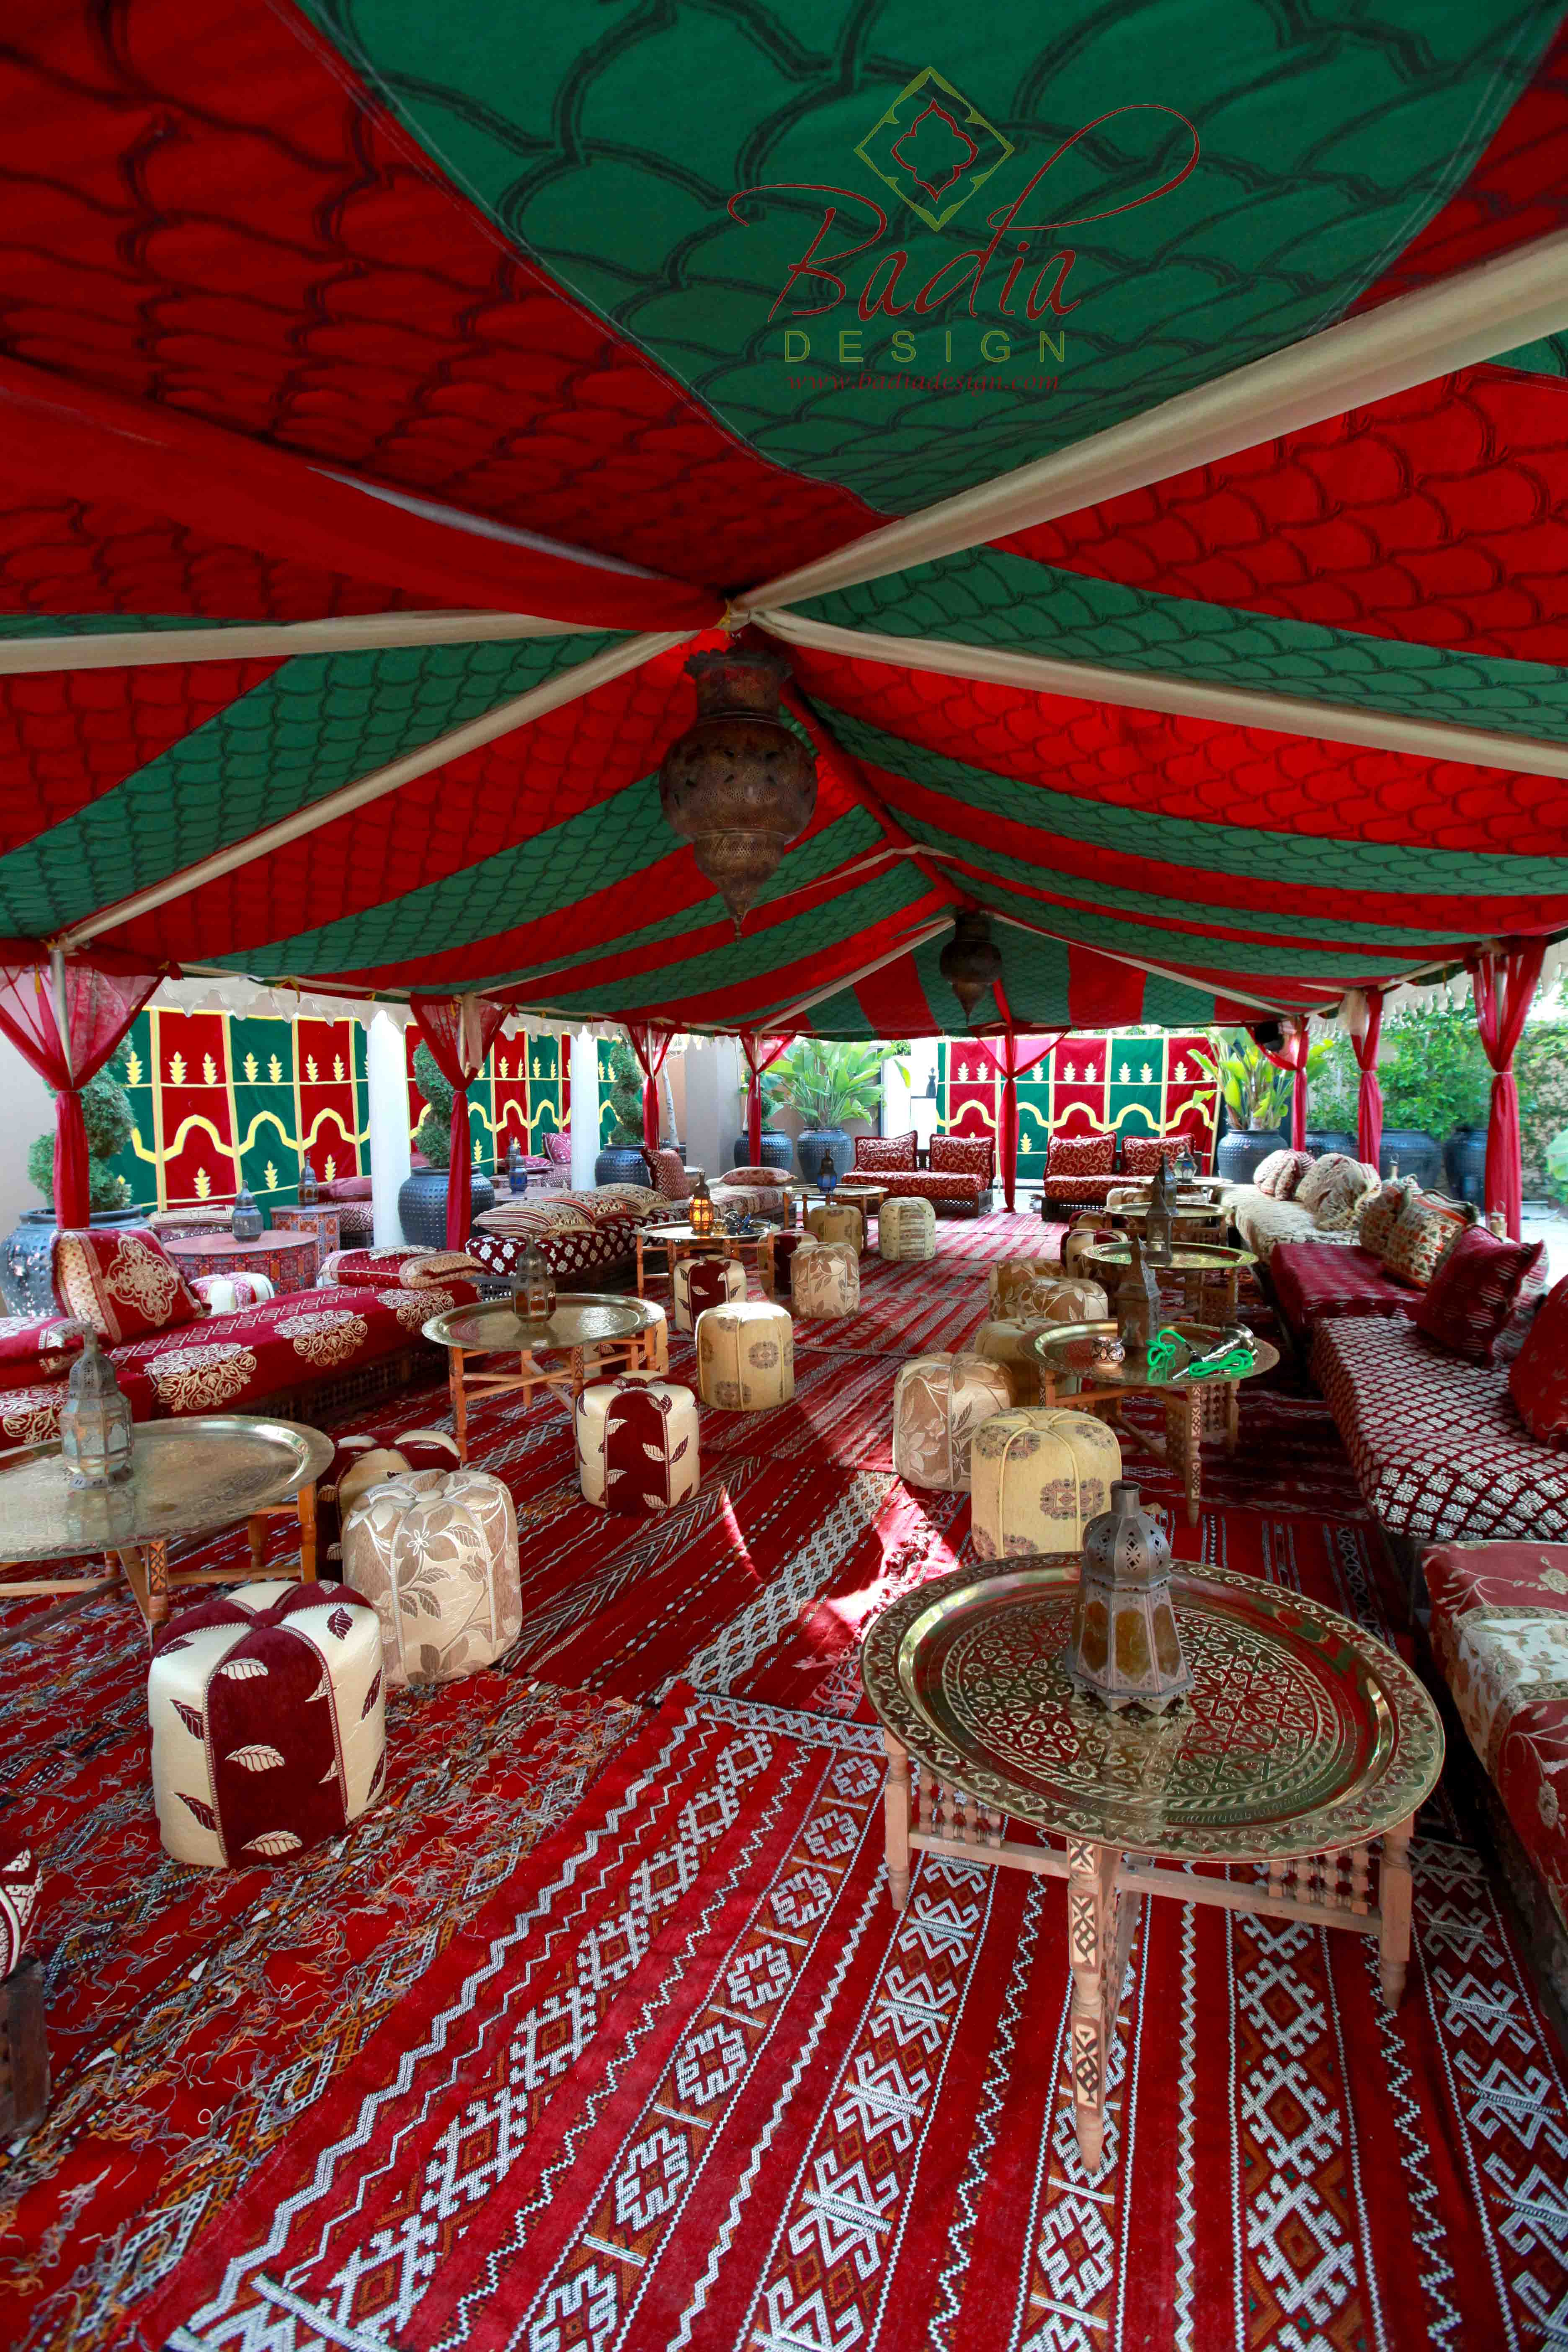 Moroccan Tent Rentals Los Angeles from Badia Design Inc.